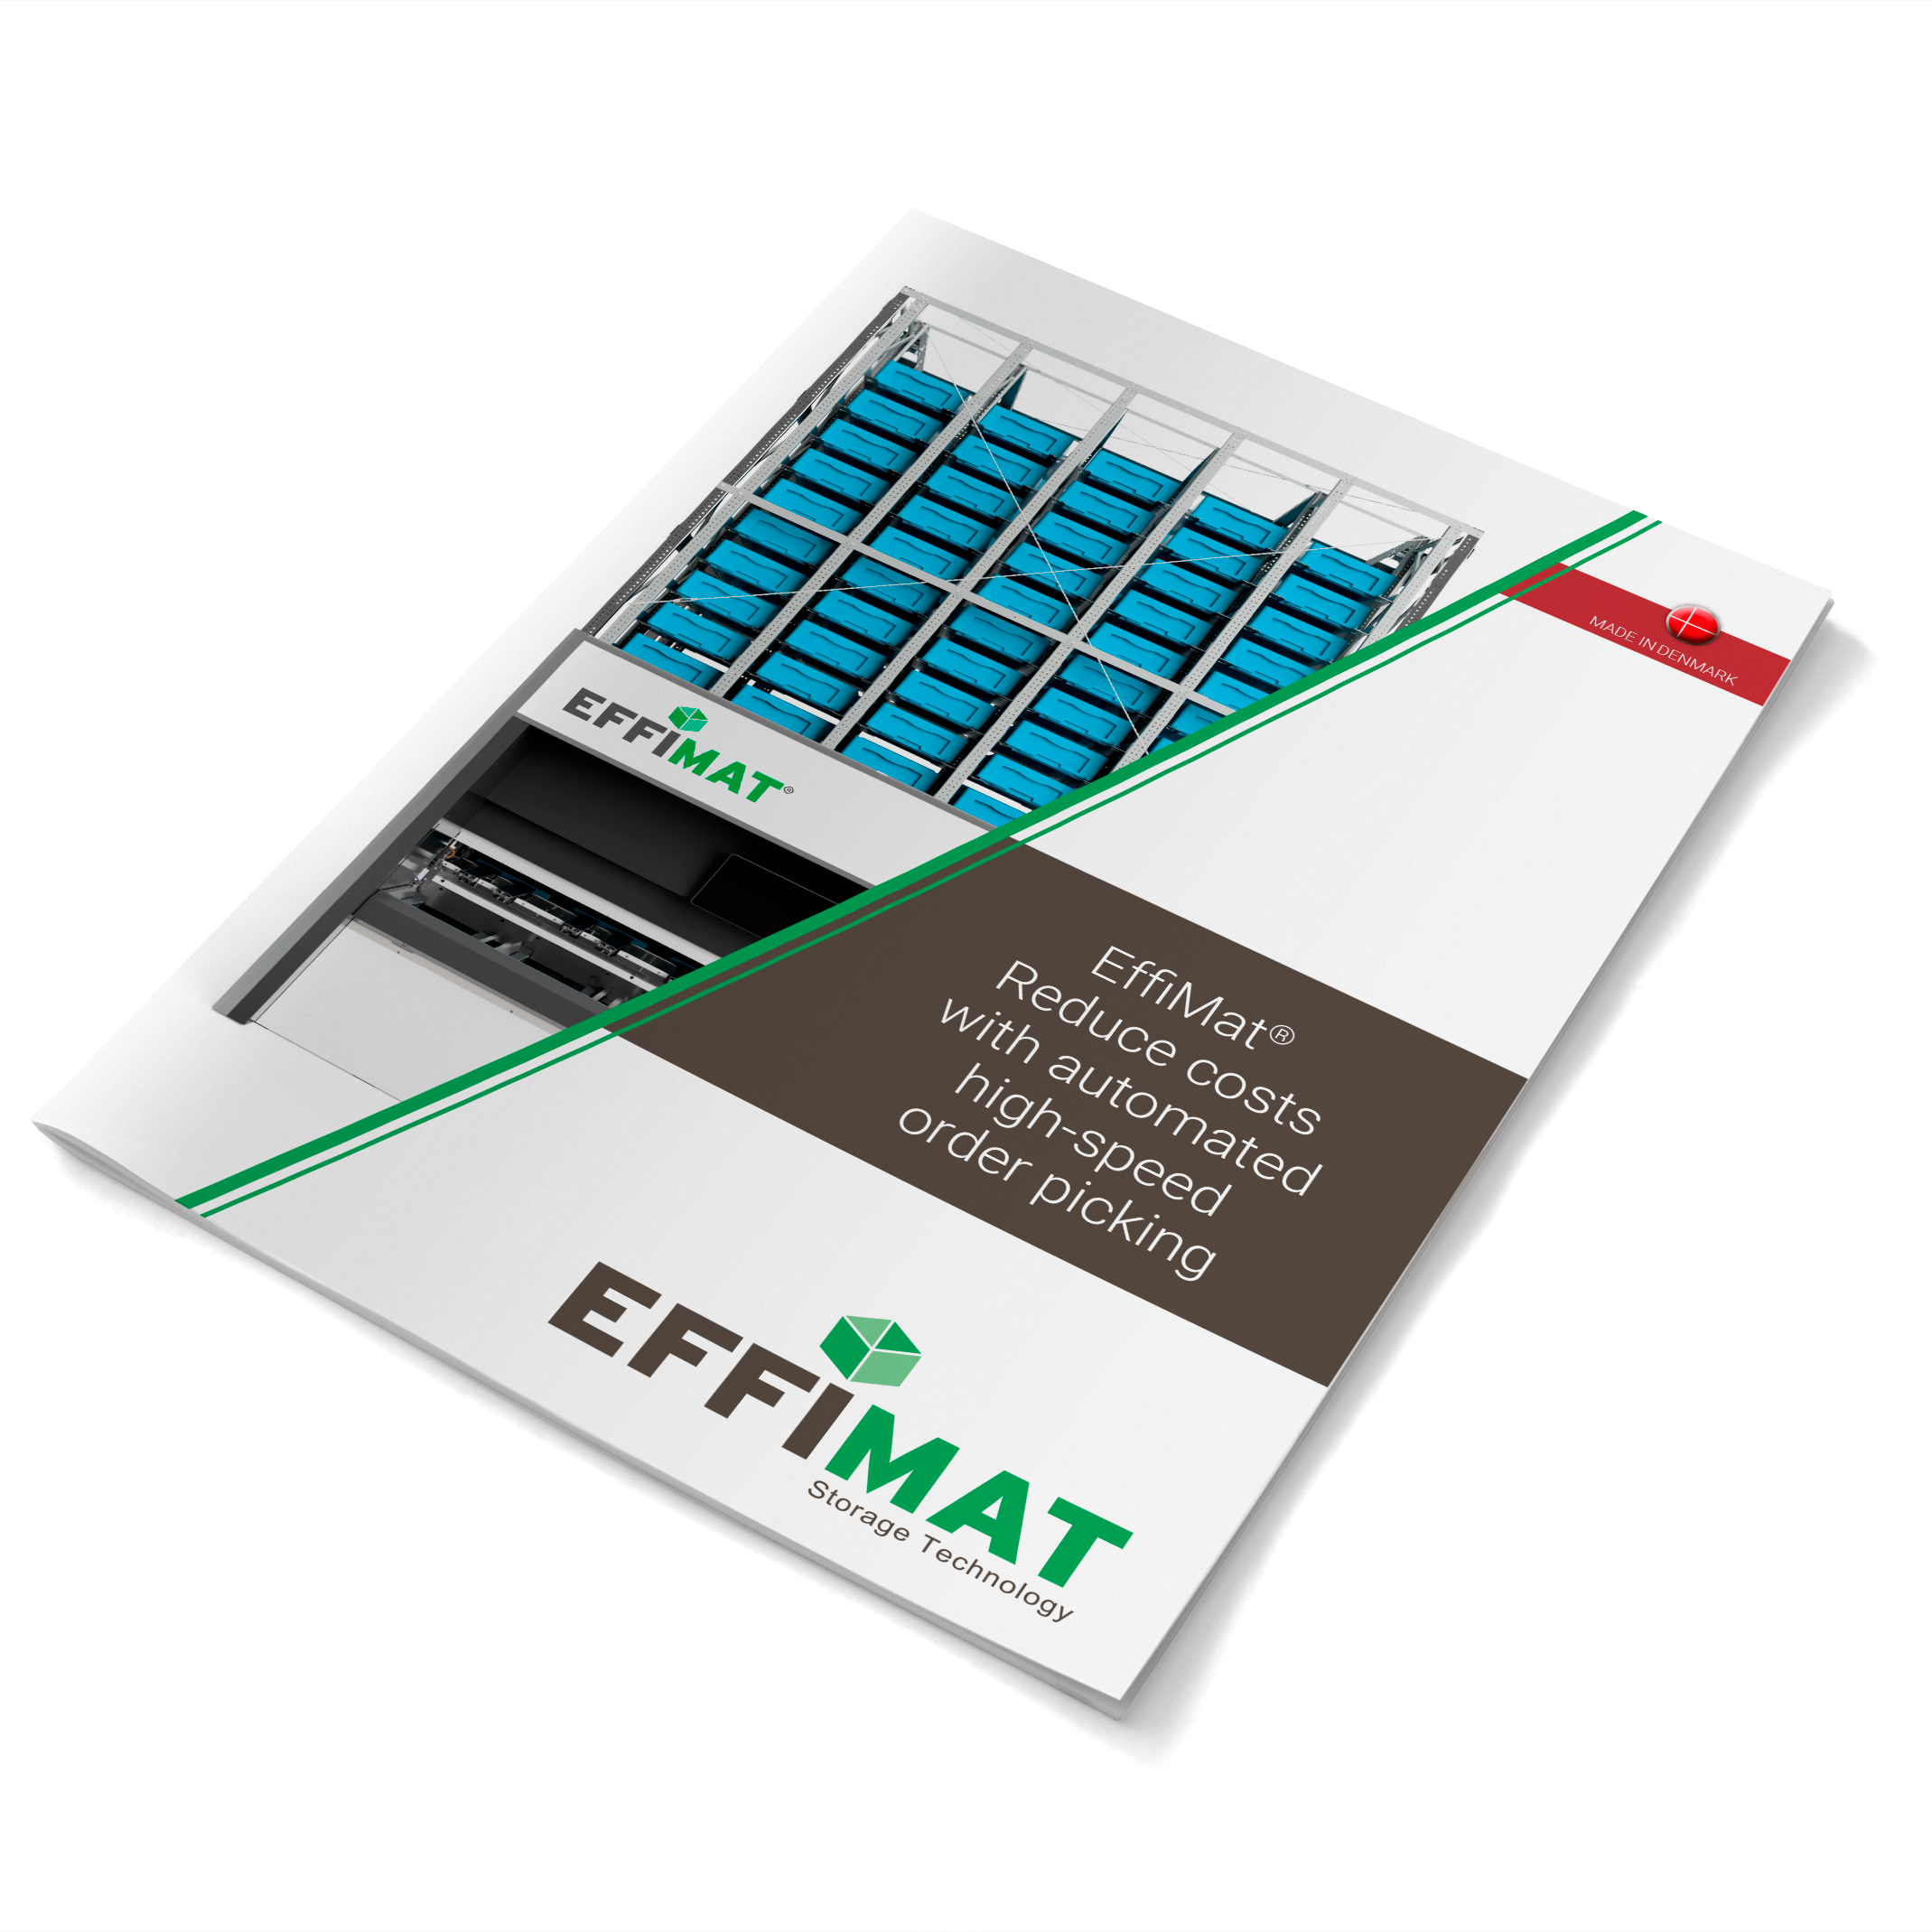 EffiMat Brochure